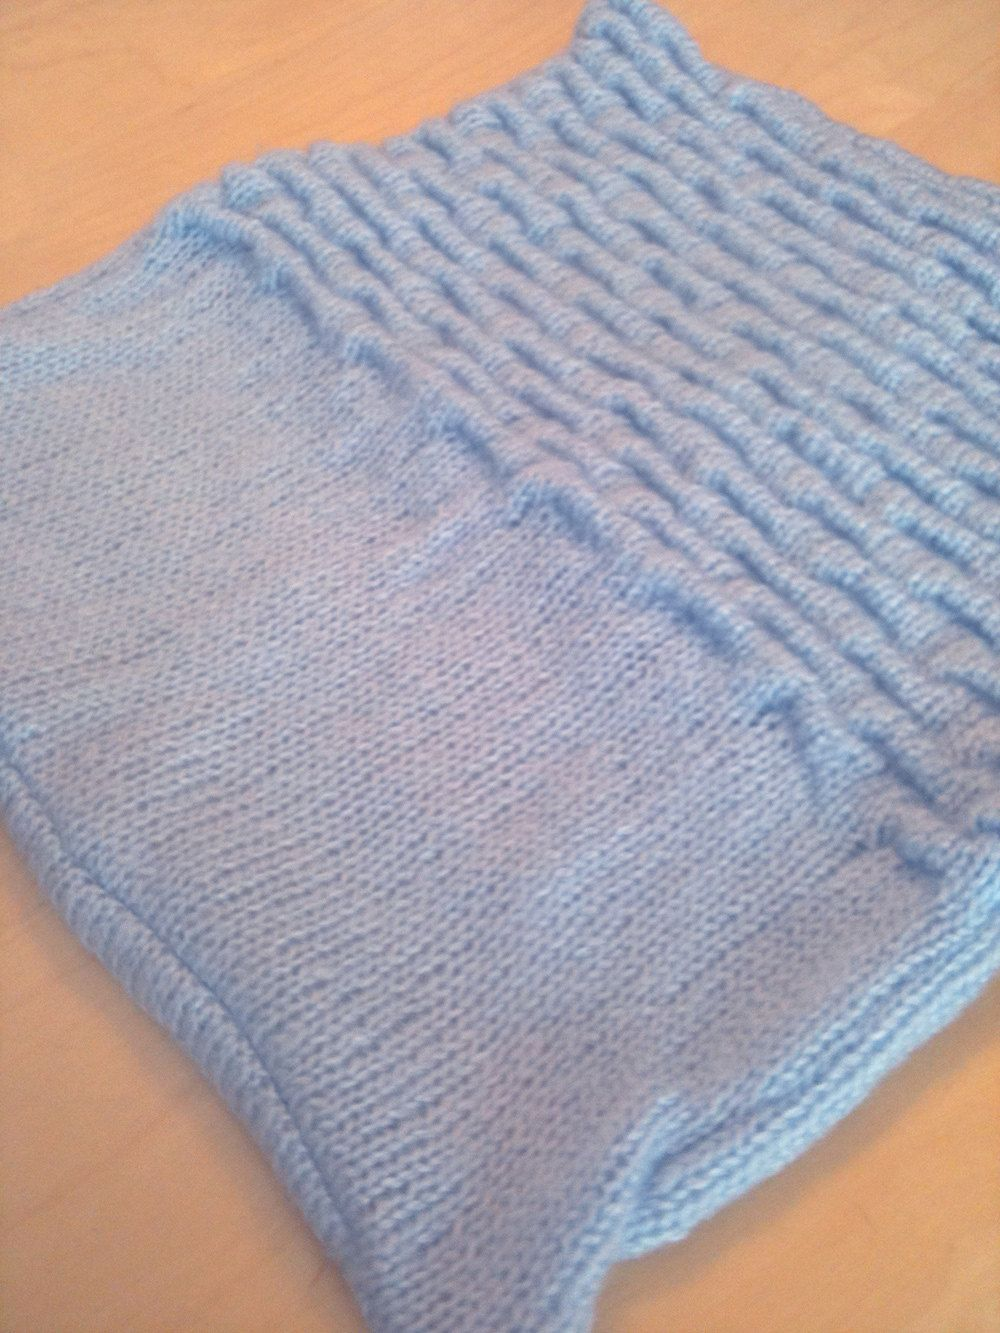 """Textured Blue Hand Knit Acrylic Blend 14 1/2"""" Square Pillow Cover. $10.00, via Etsy."""